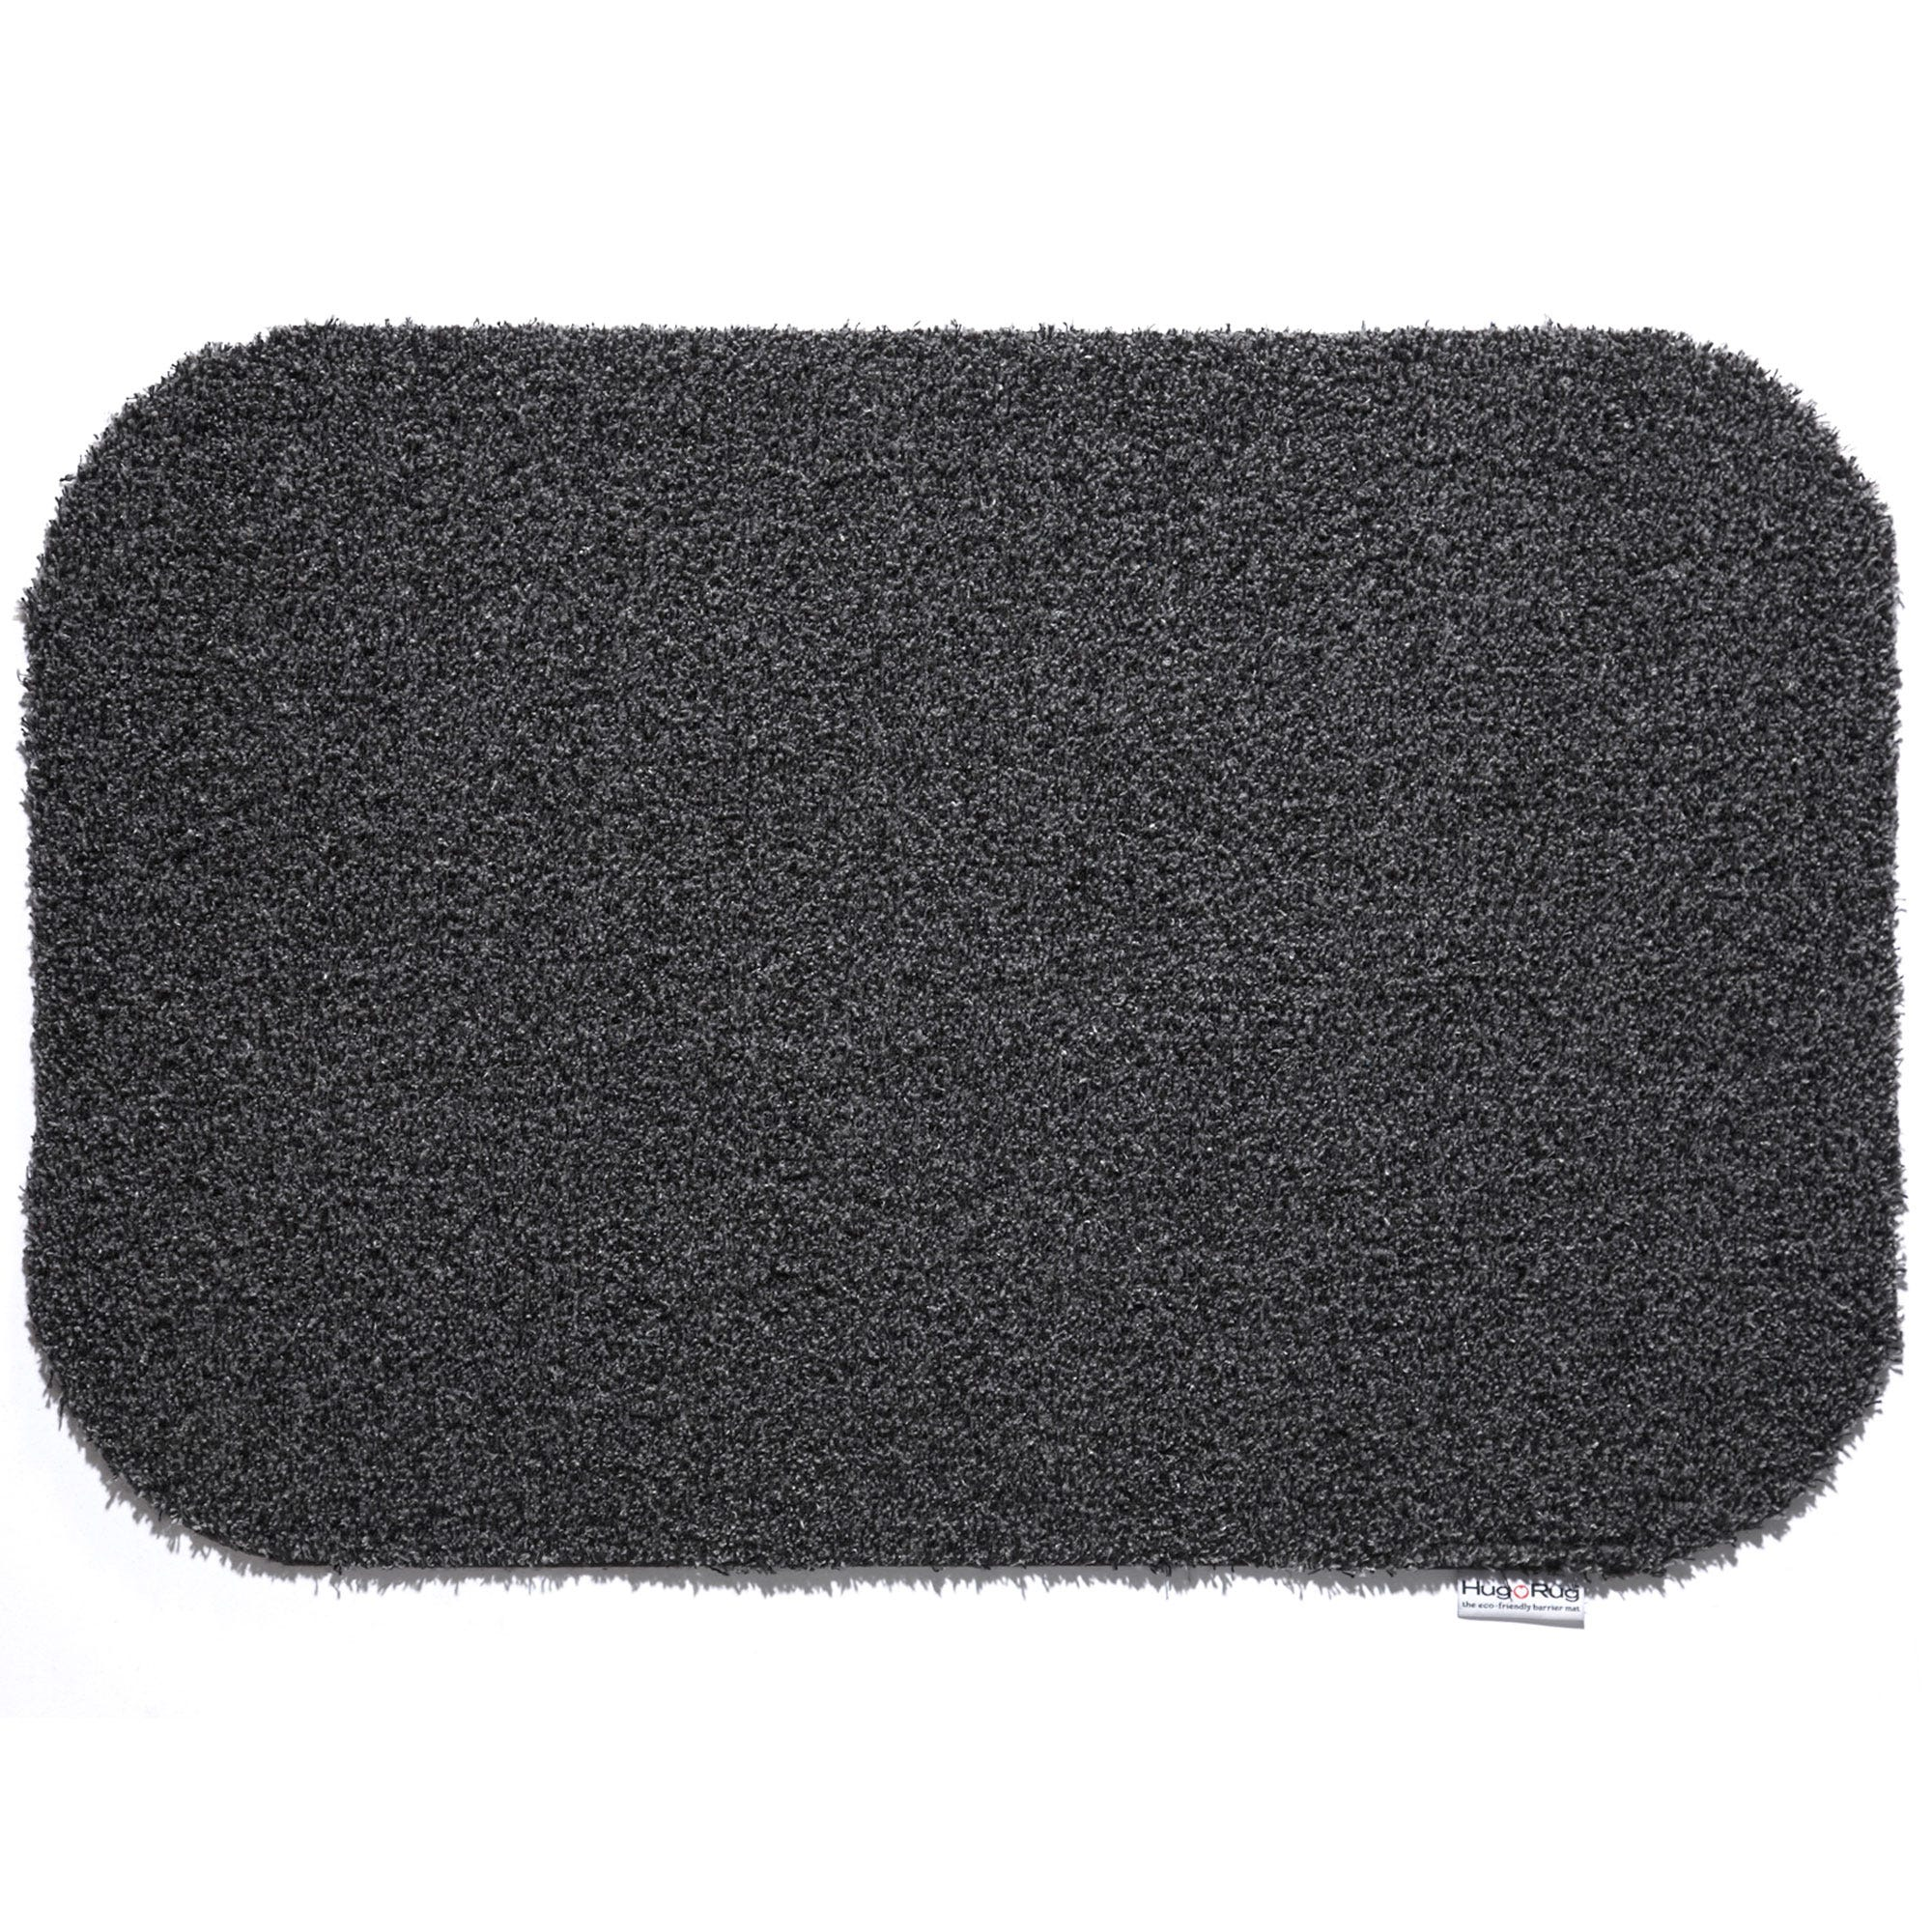 Compare prices for Hug Rug 50 x 75cm Doormat - Charcoal